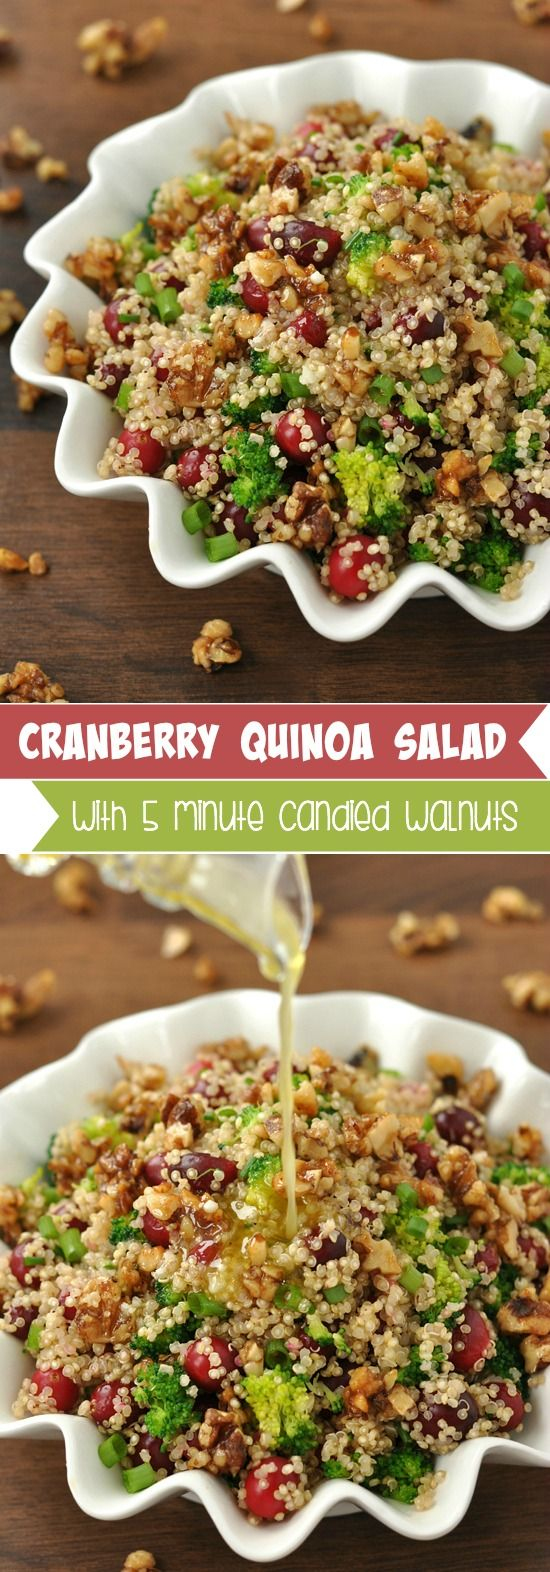 Cranberry Quinoa Salad with fluffy quinoa salad is spiked with juicy cranberries, vibrant veggies and topped with homemade honey and brown sugar walnuts! This recipe is colorful and delicious! #glutenfree #cranberry #quinoa #salad